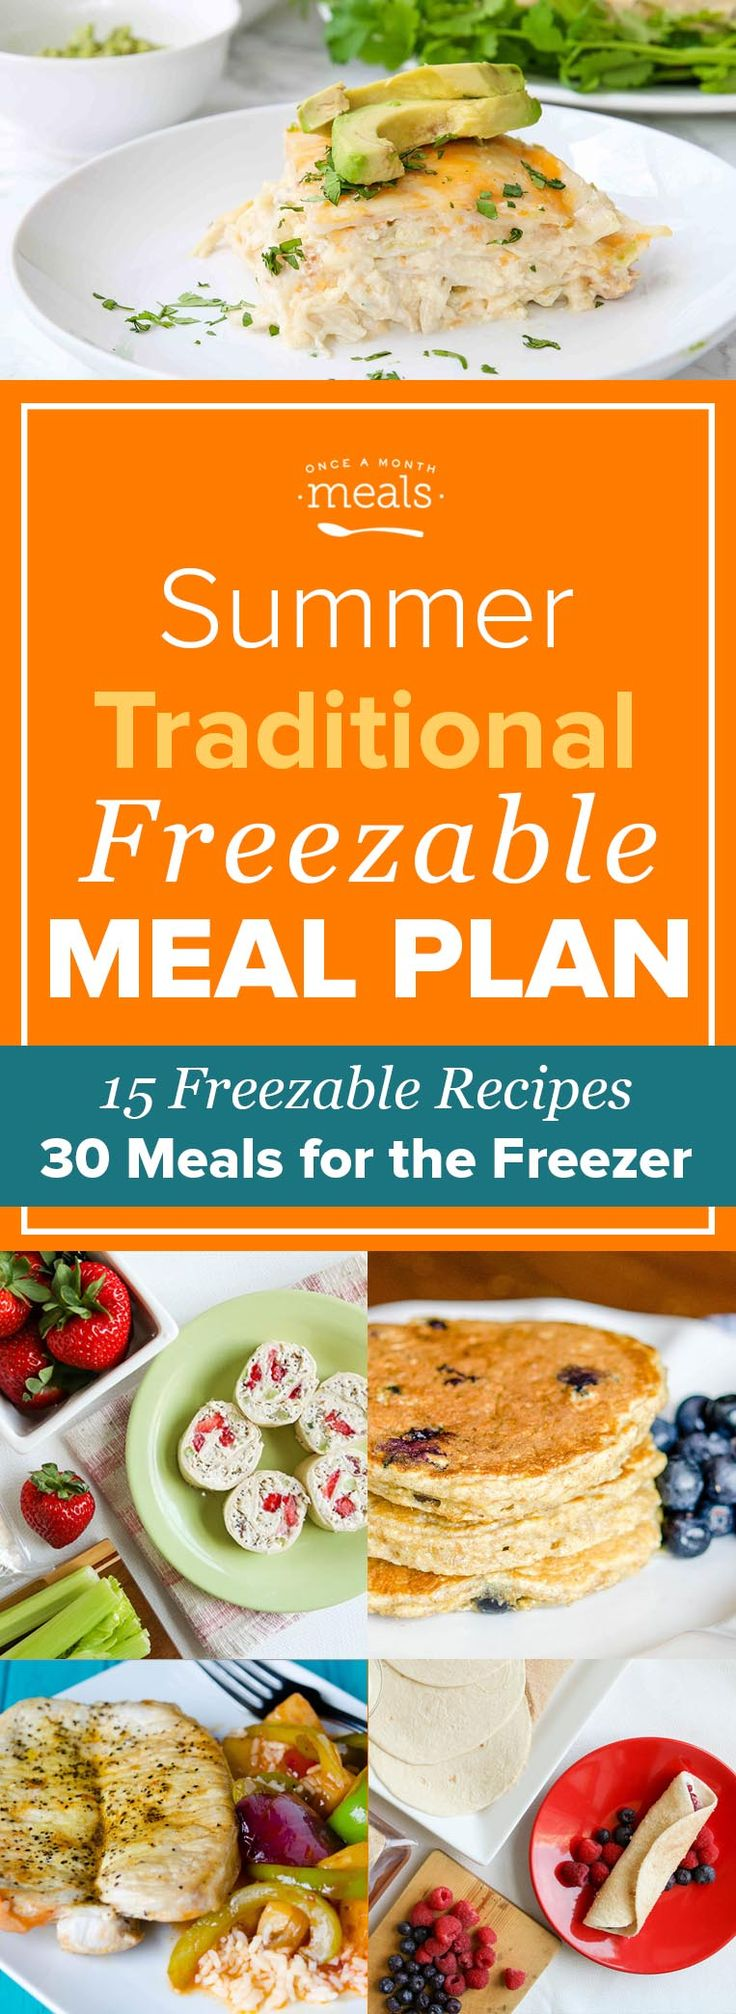 From Fruity Breakfast Burritos and Berry Delicious Blueberry Oatmeal Pancakes to Aloha Pork Chops and Asian Steak Kebabs, this Summer Traditional Freezer Menu incorporates flavorful seasonal produce with blueberries, bell peppers, and pineapple aplenty.